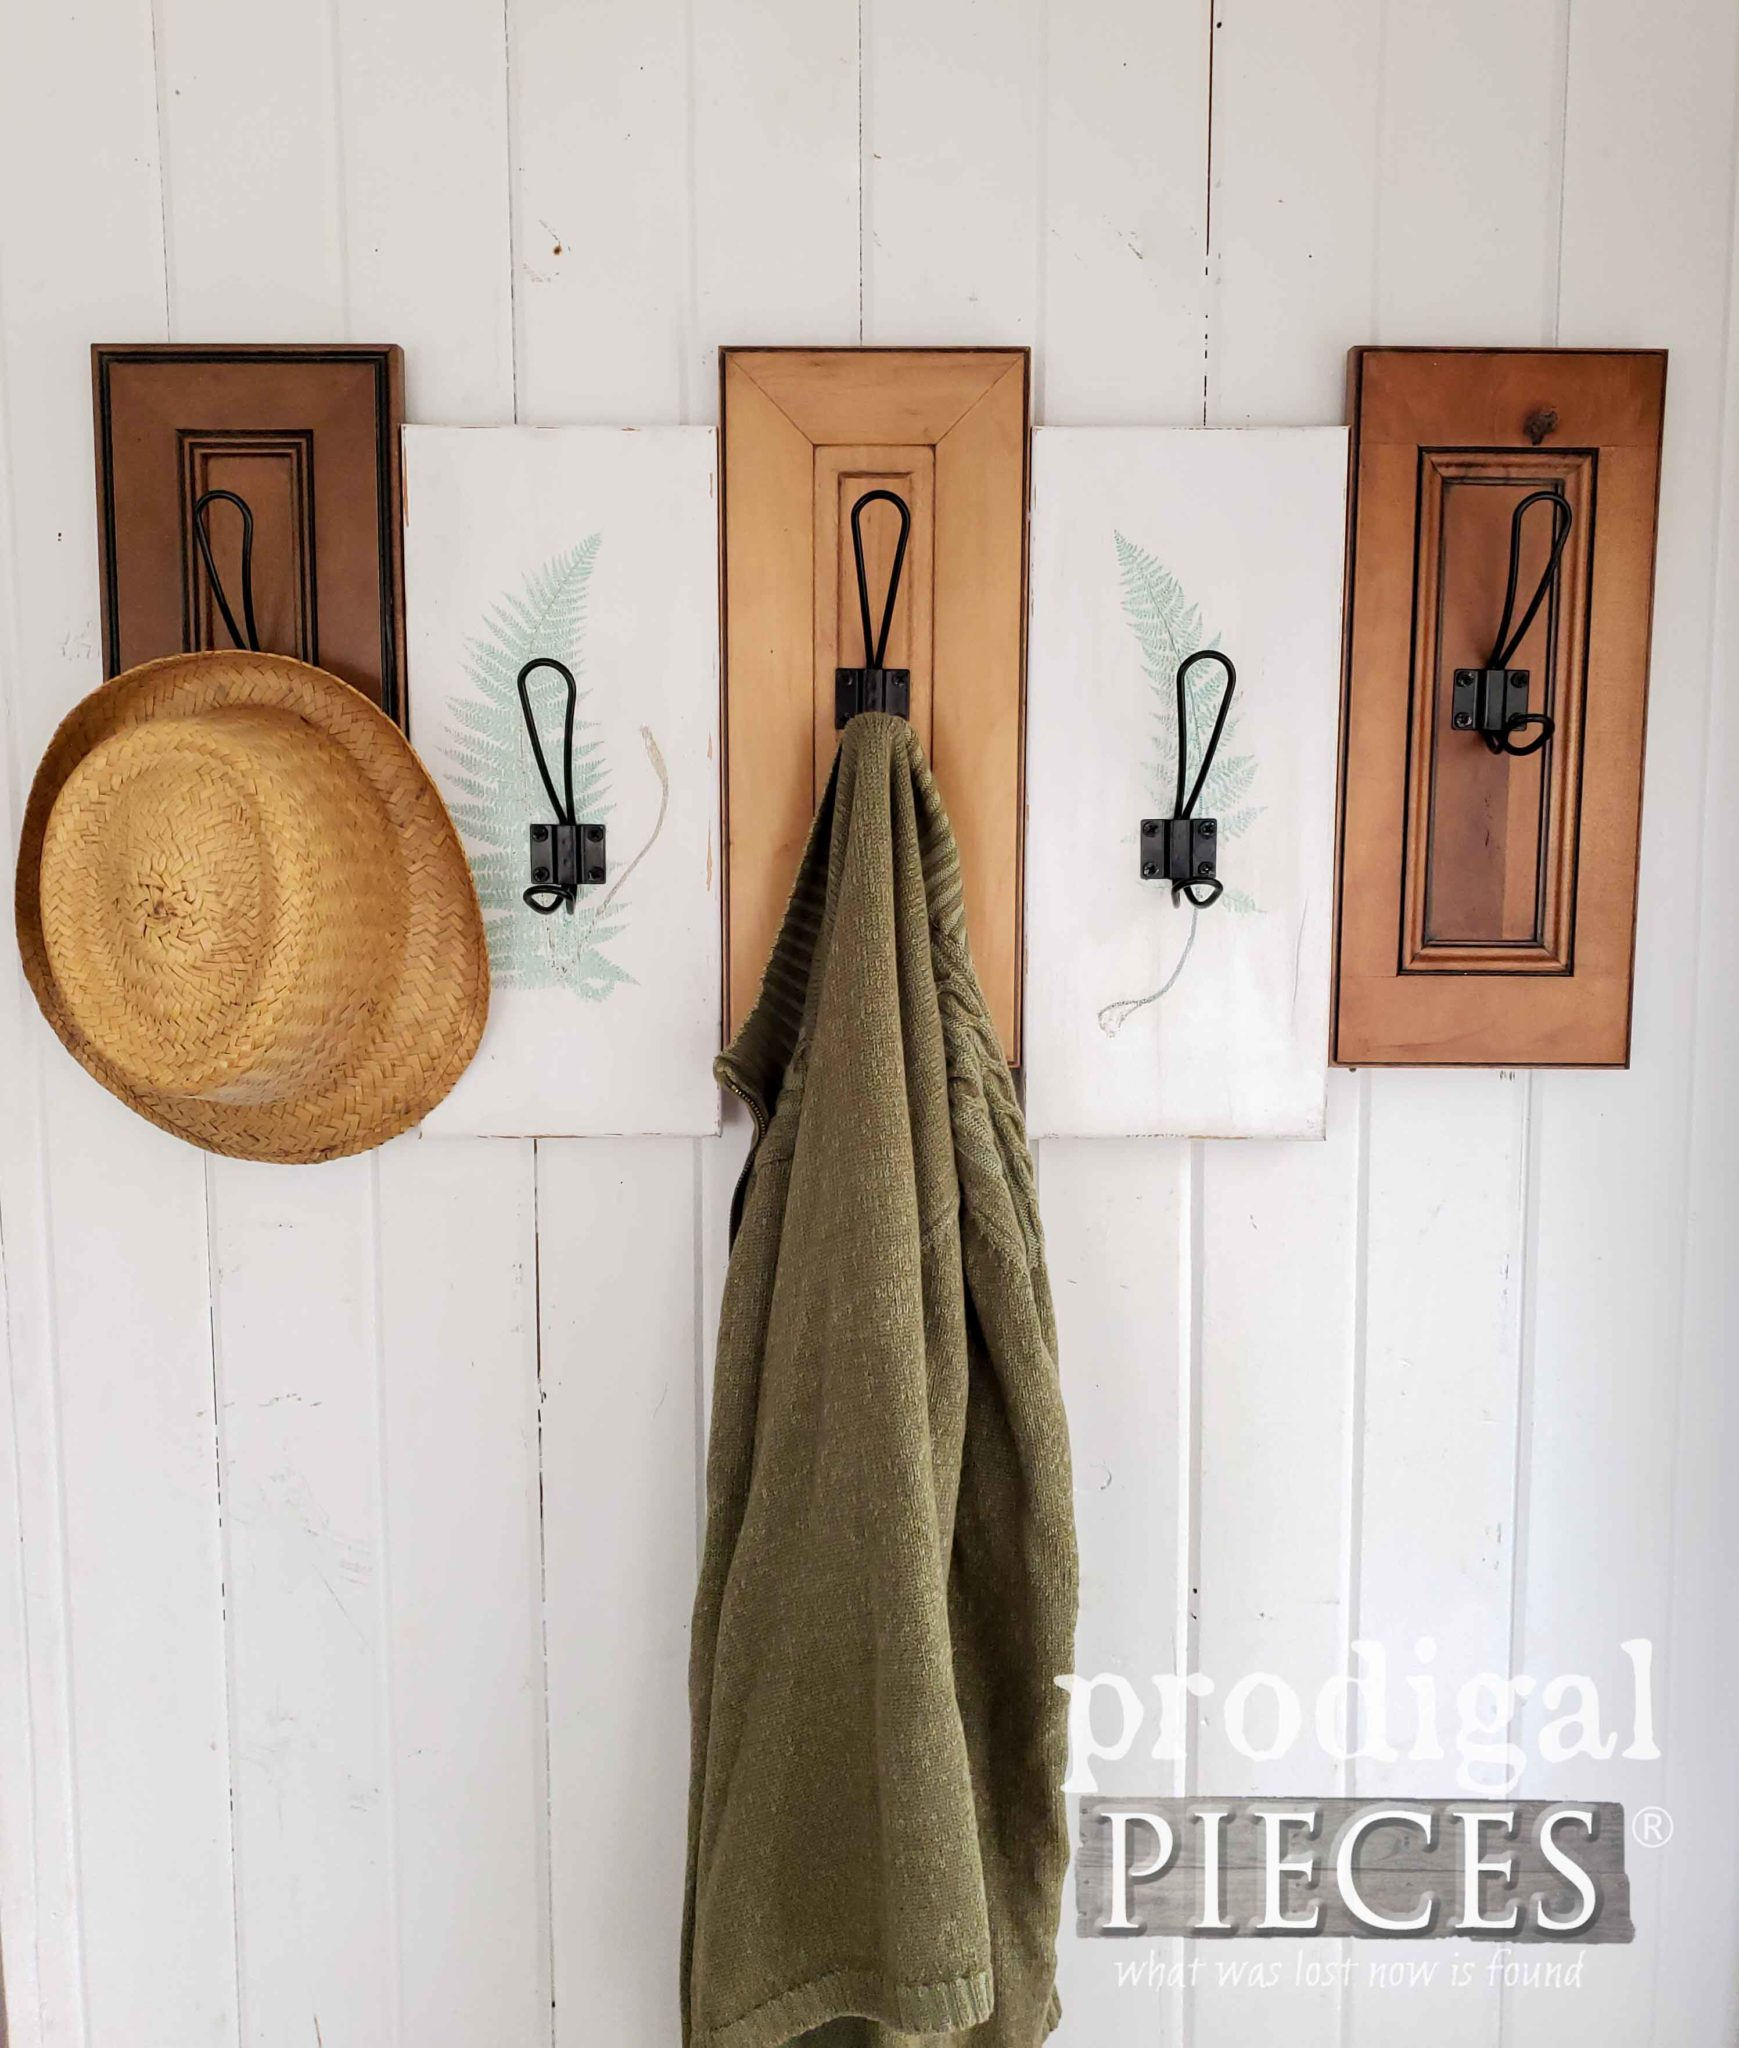 DIY Upcycled Drawer Fronts made into a Coat Towel Rack with Botanical Design by Larissa of Prodigal Pieces | prodigalpieces.com #prodigalpieces #diy #home #handmade #homedecor #homedecorideas #shopping